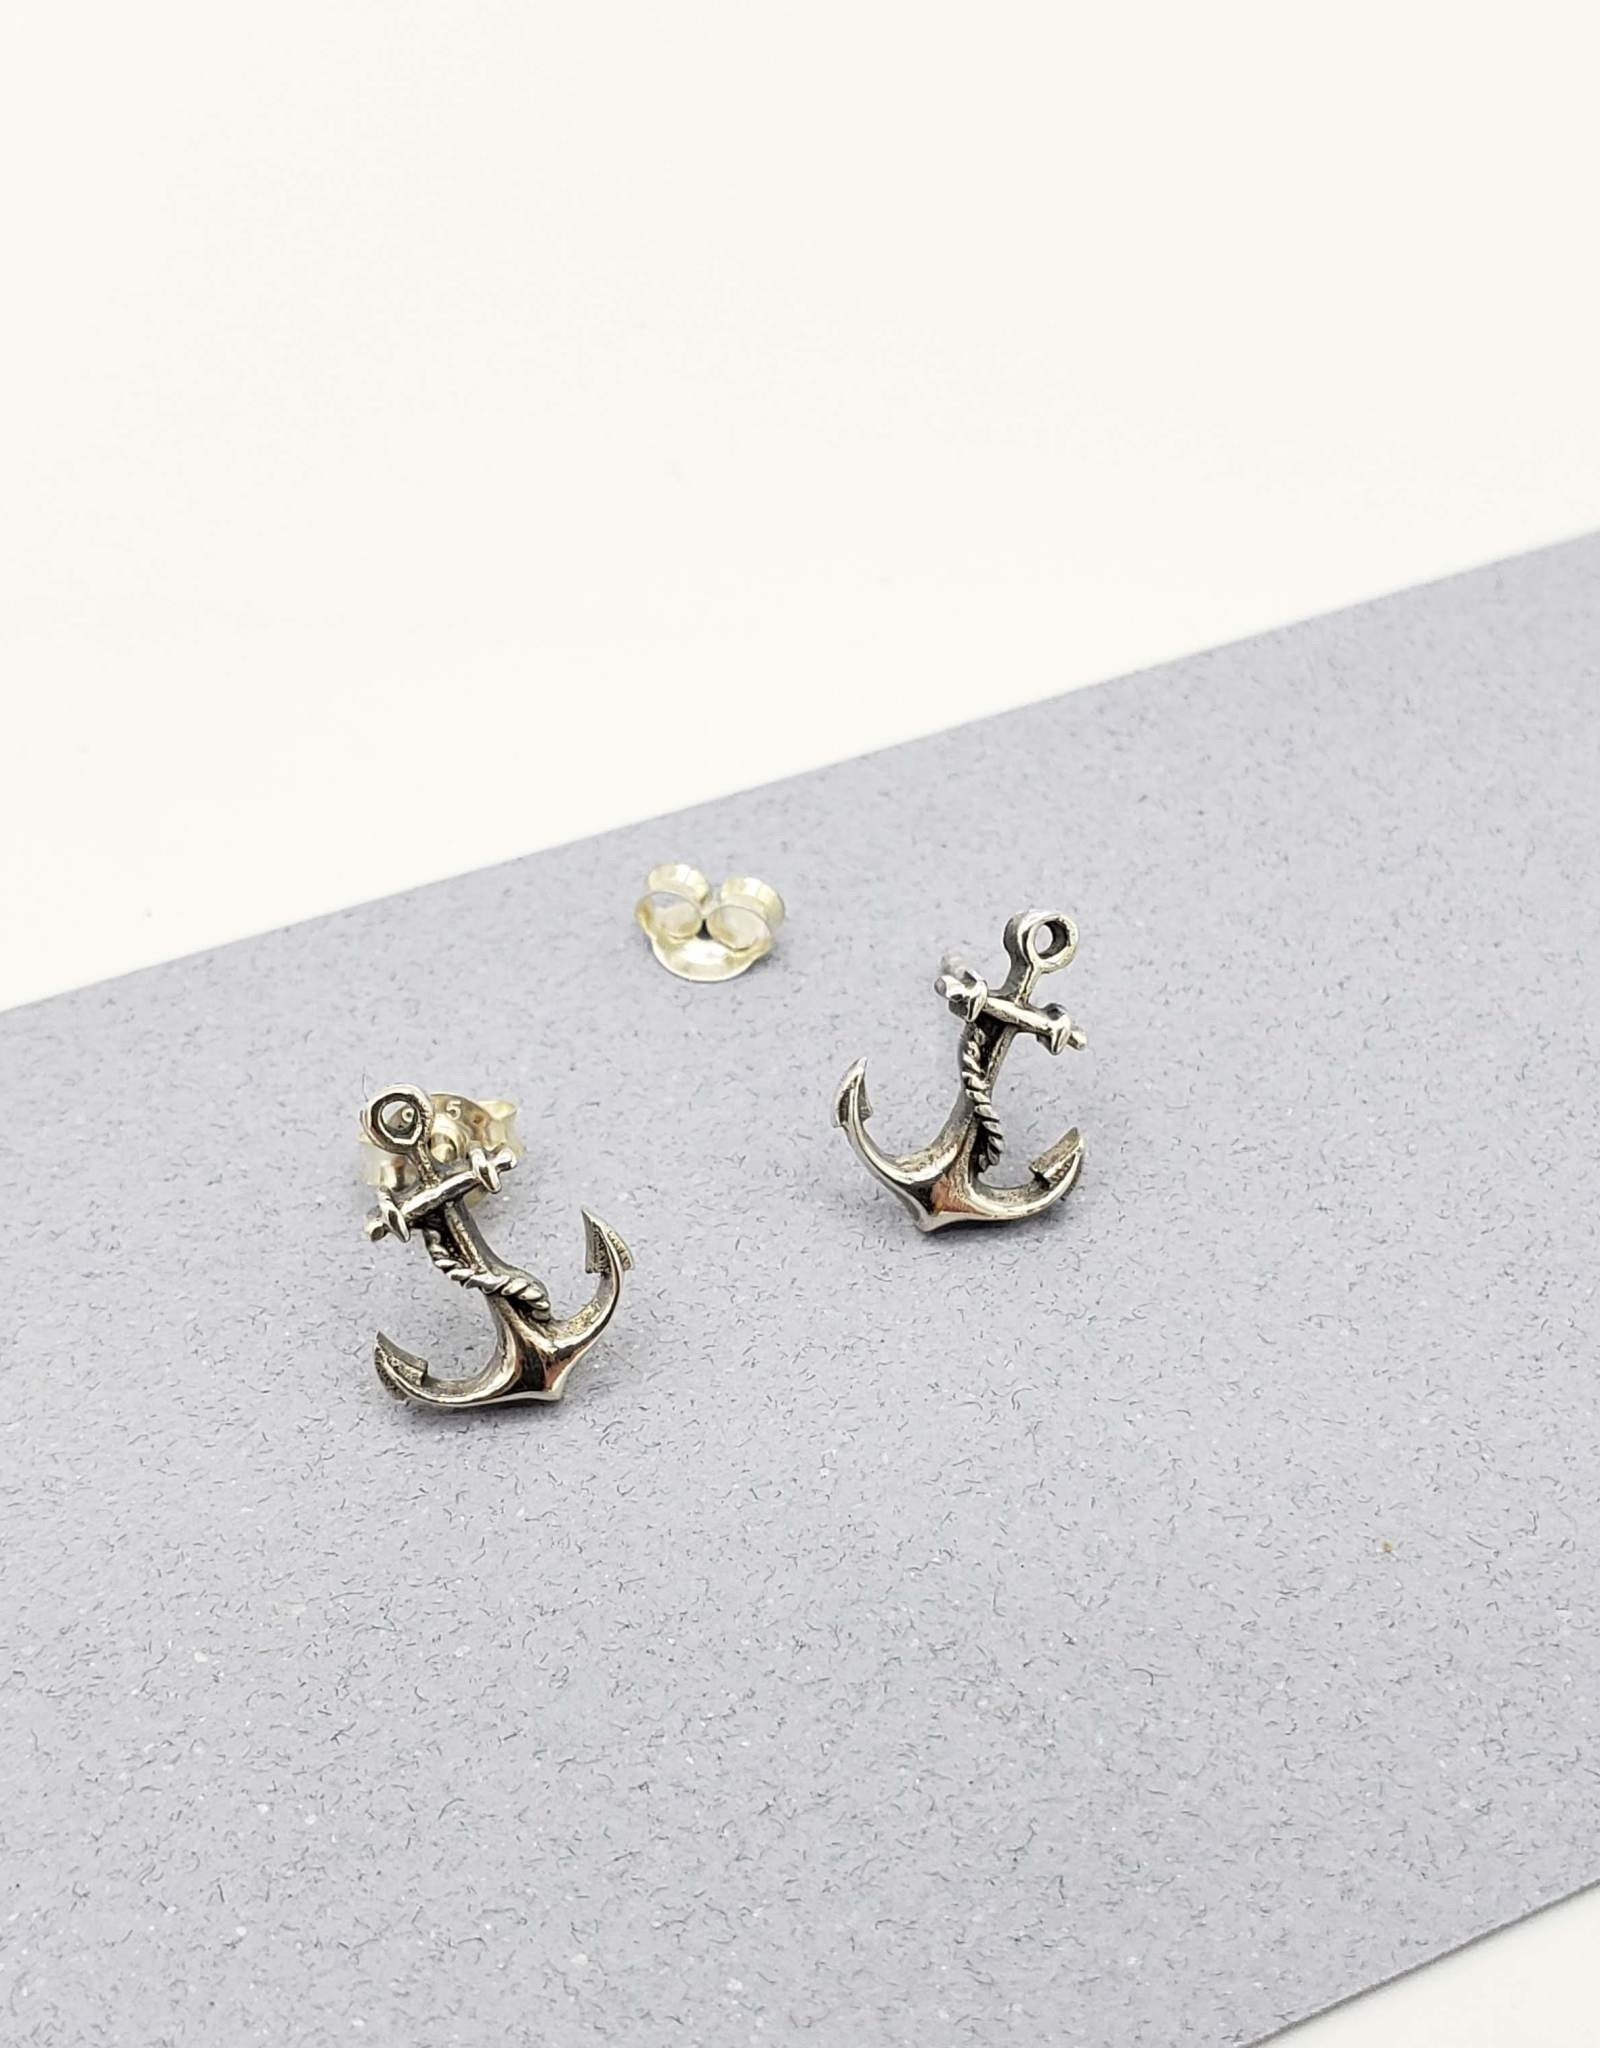 Tiger Mountain Anchor Earrings Sterling Silver Posts